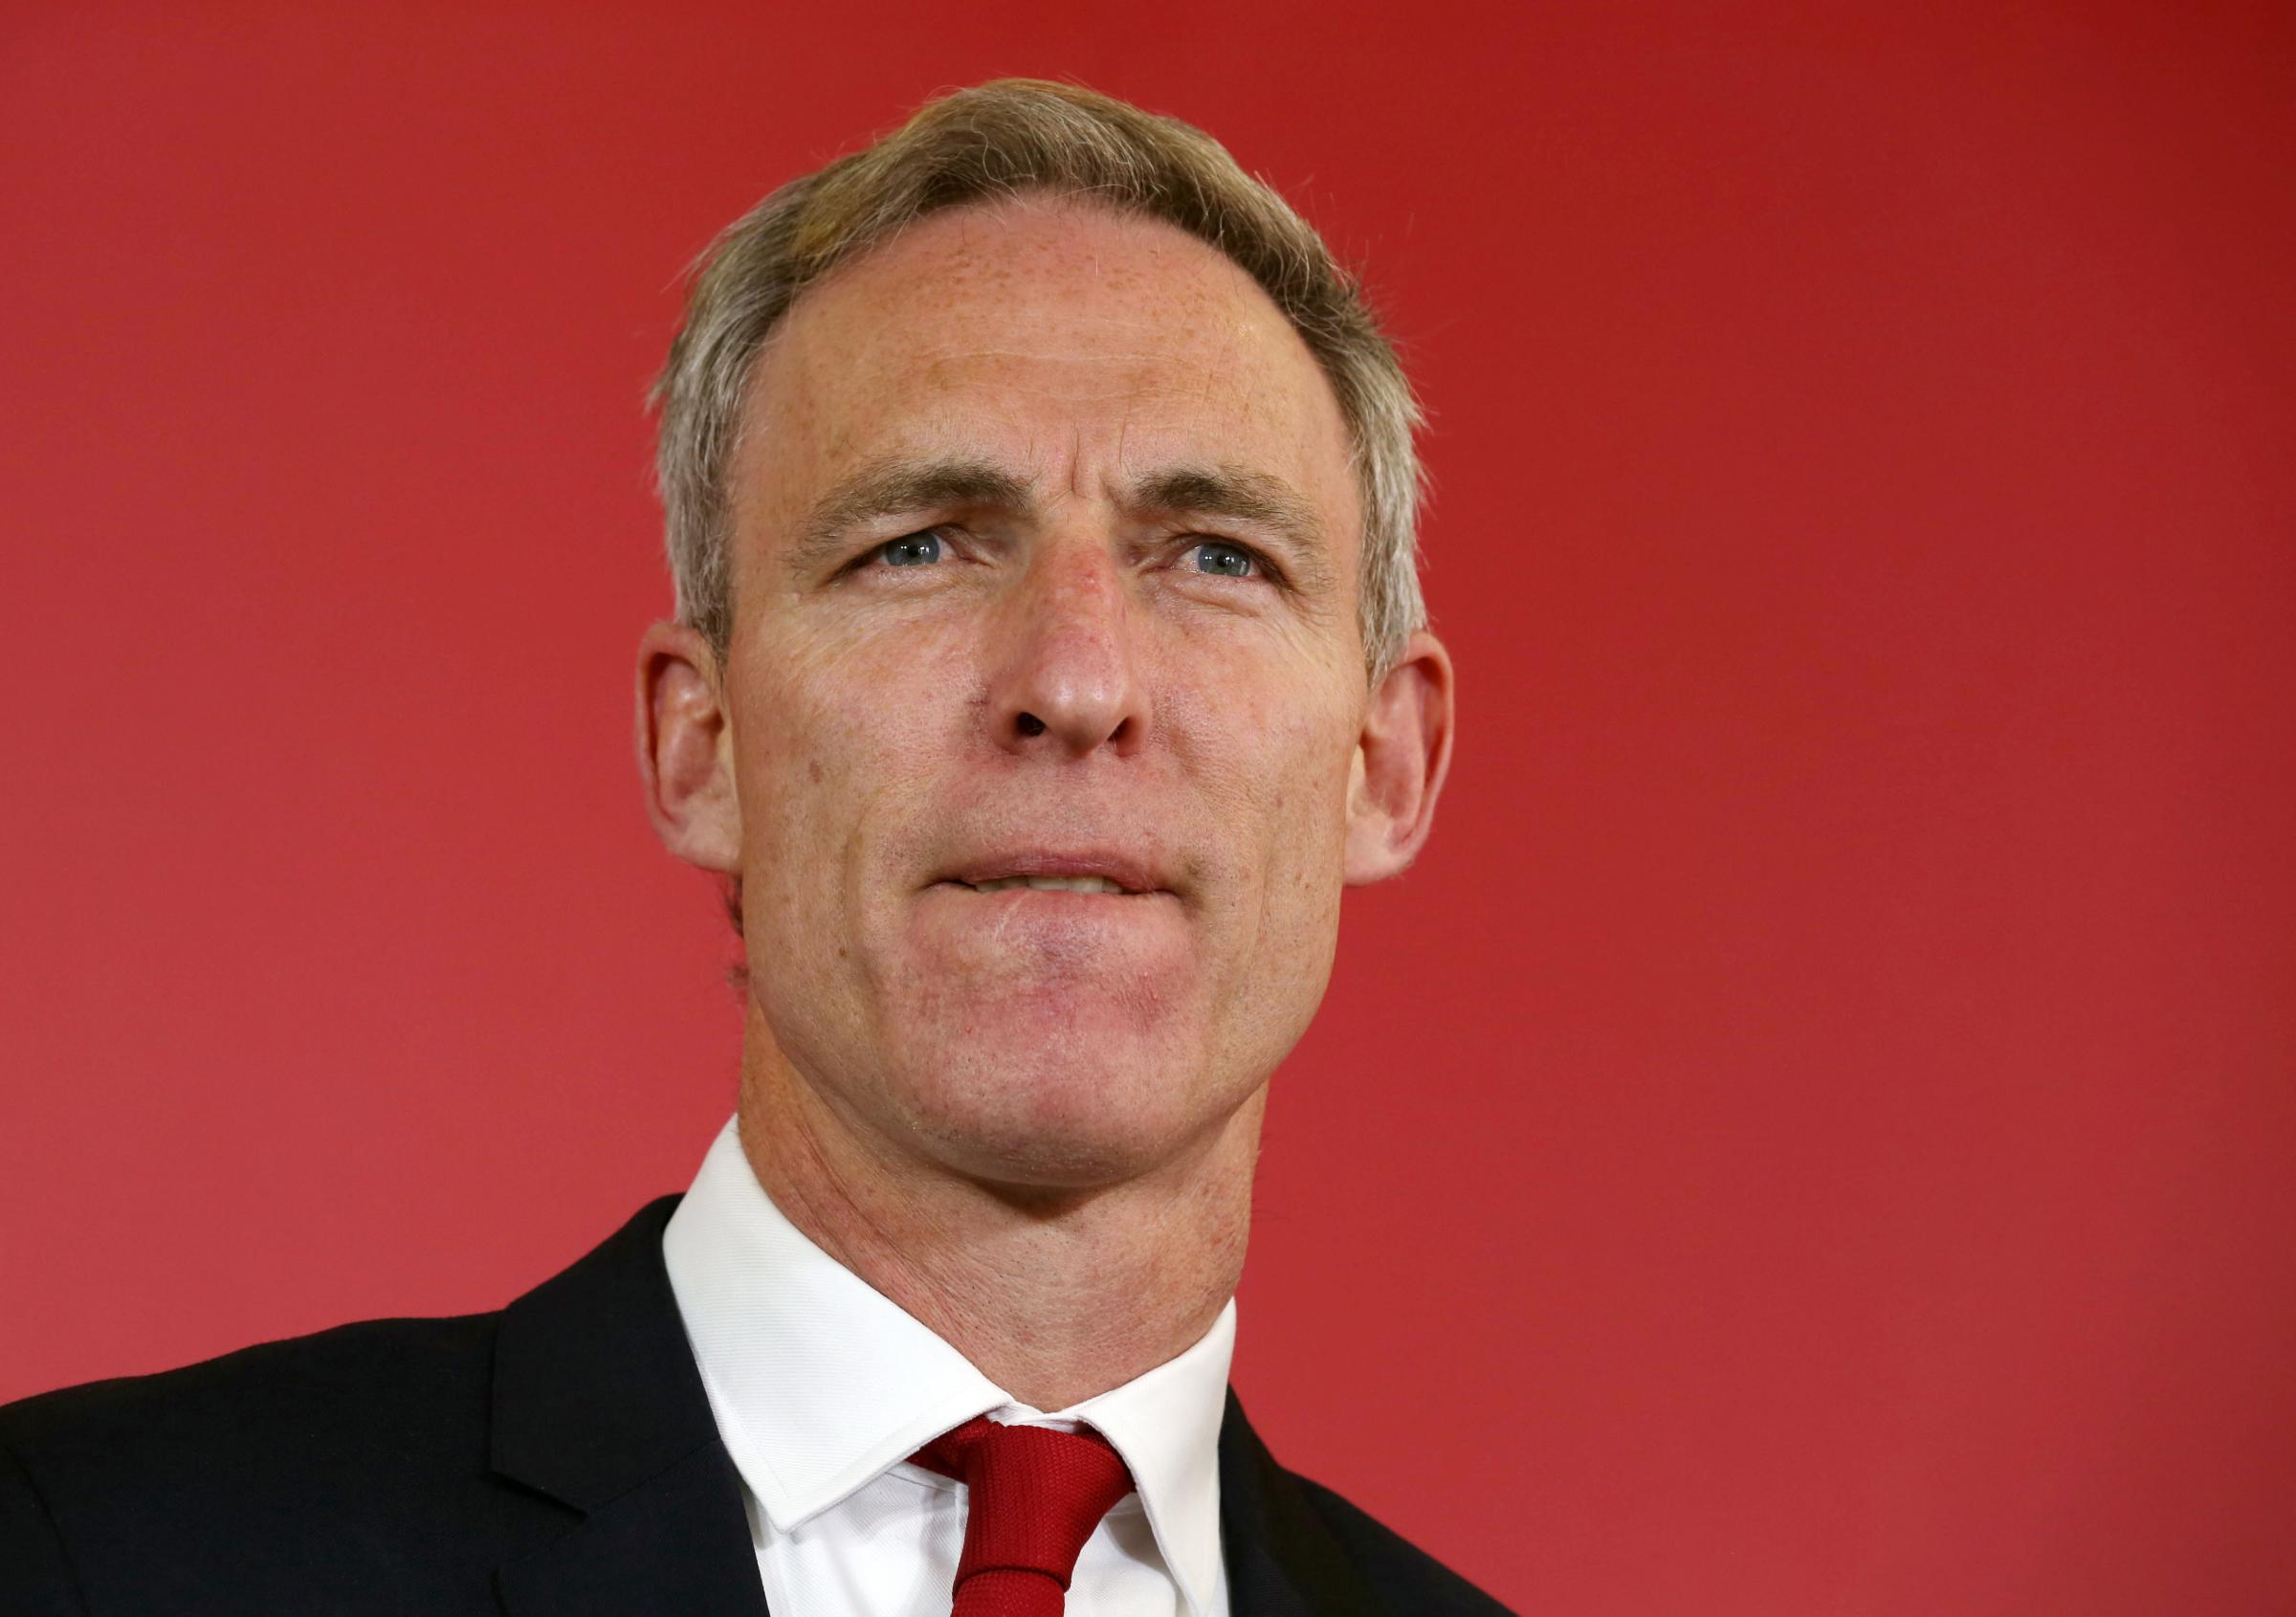 Jim Murphy slams Yessers for 'grotesque' language ... but forgets one crucial point